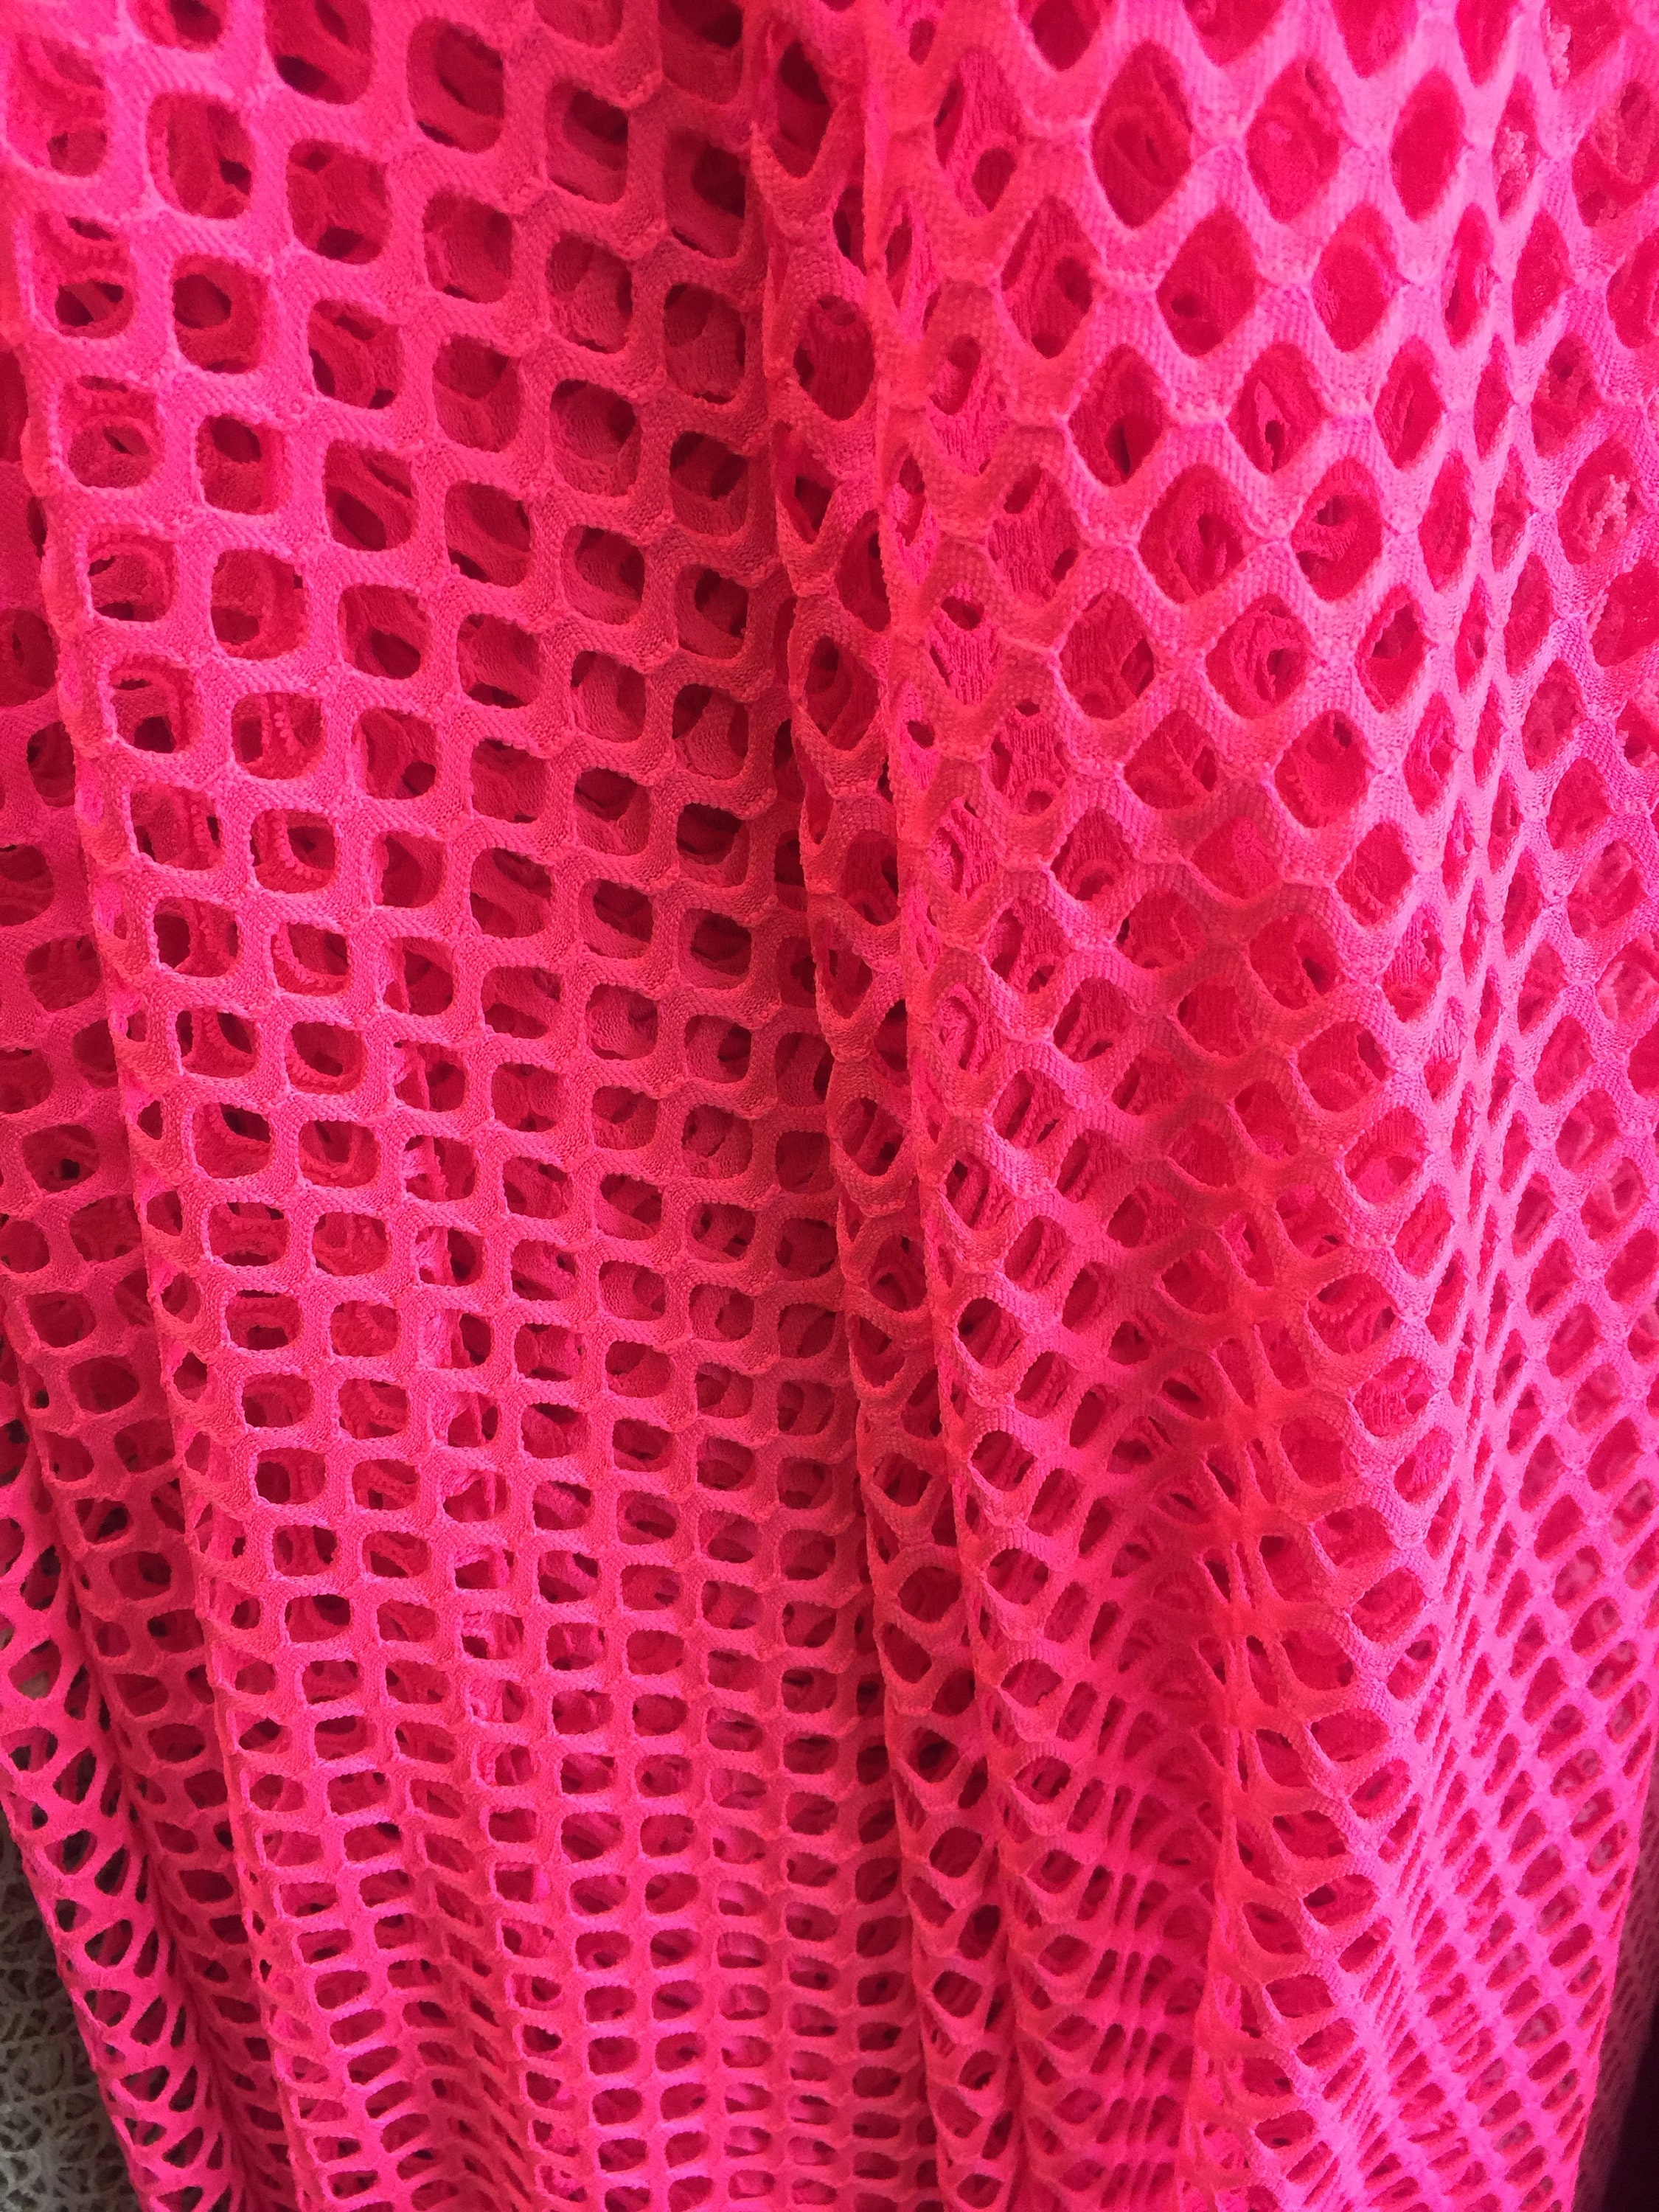 Fish Net 4 Way Stretch Nylon Spandex Lycra Neon Fuchsia